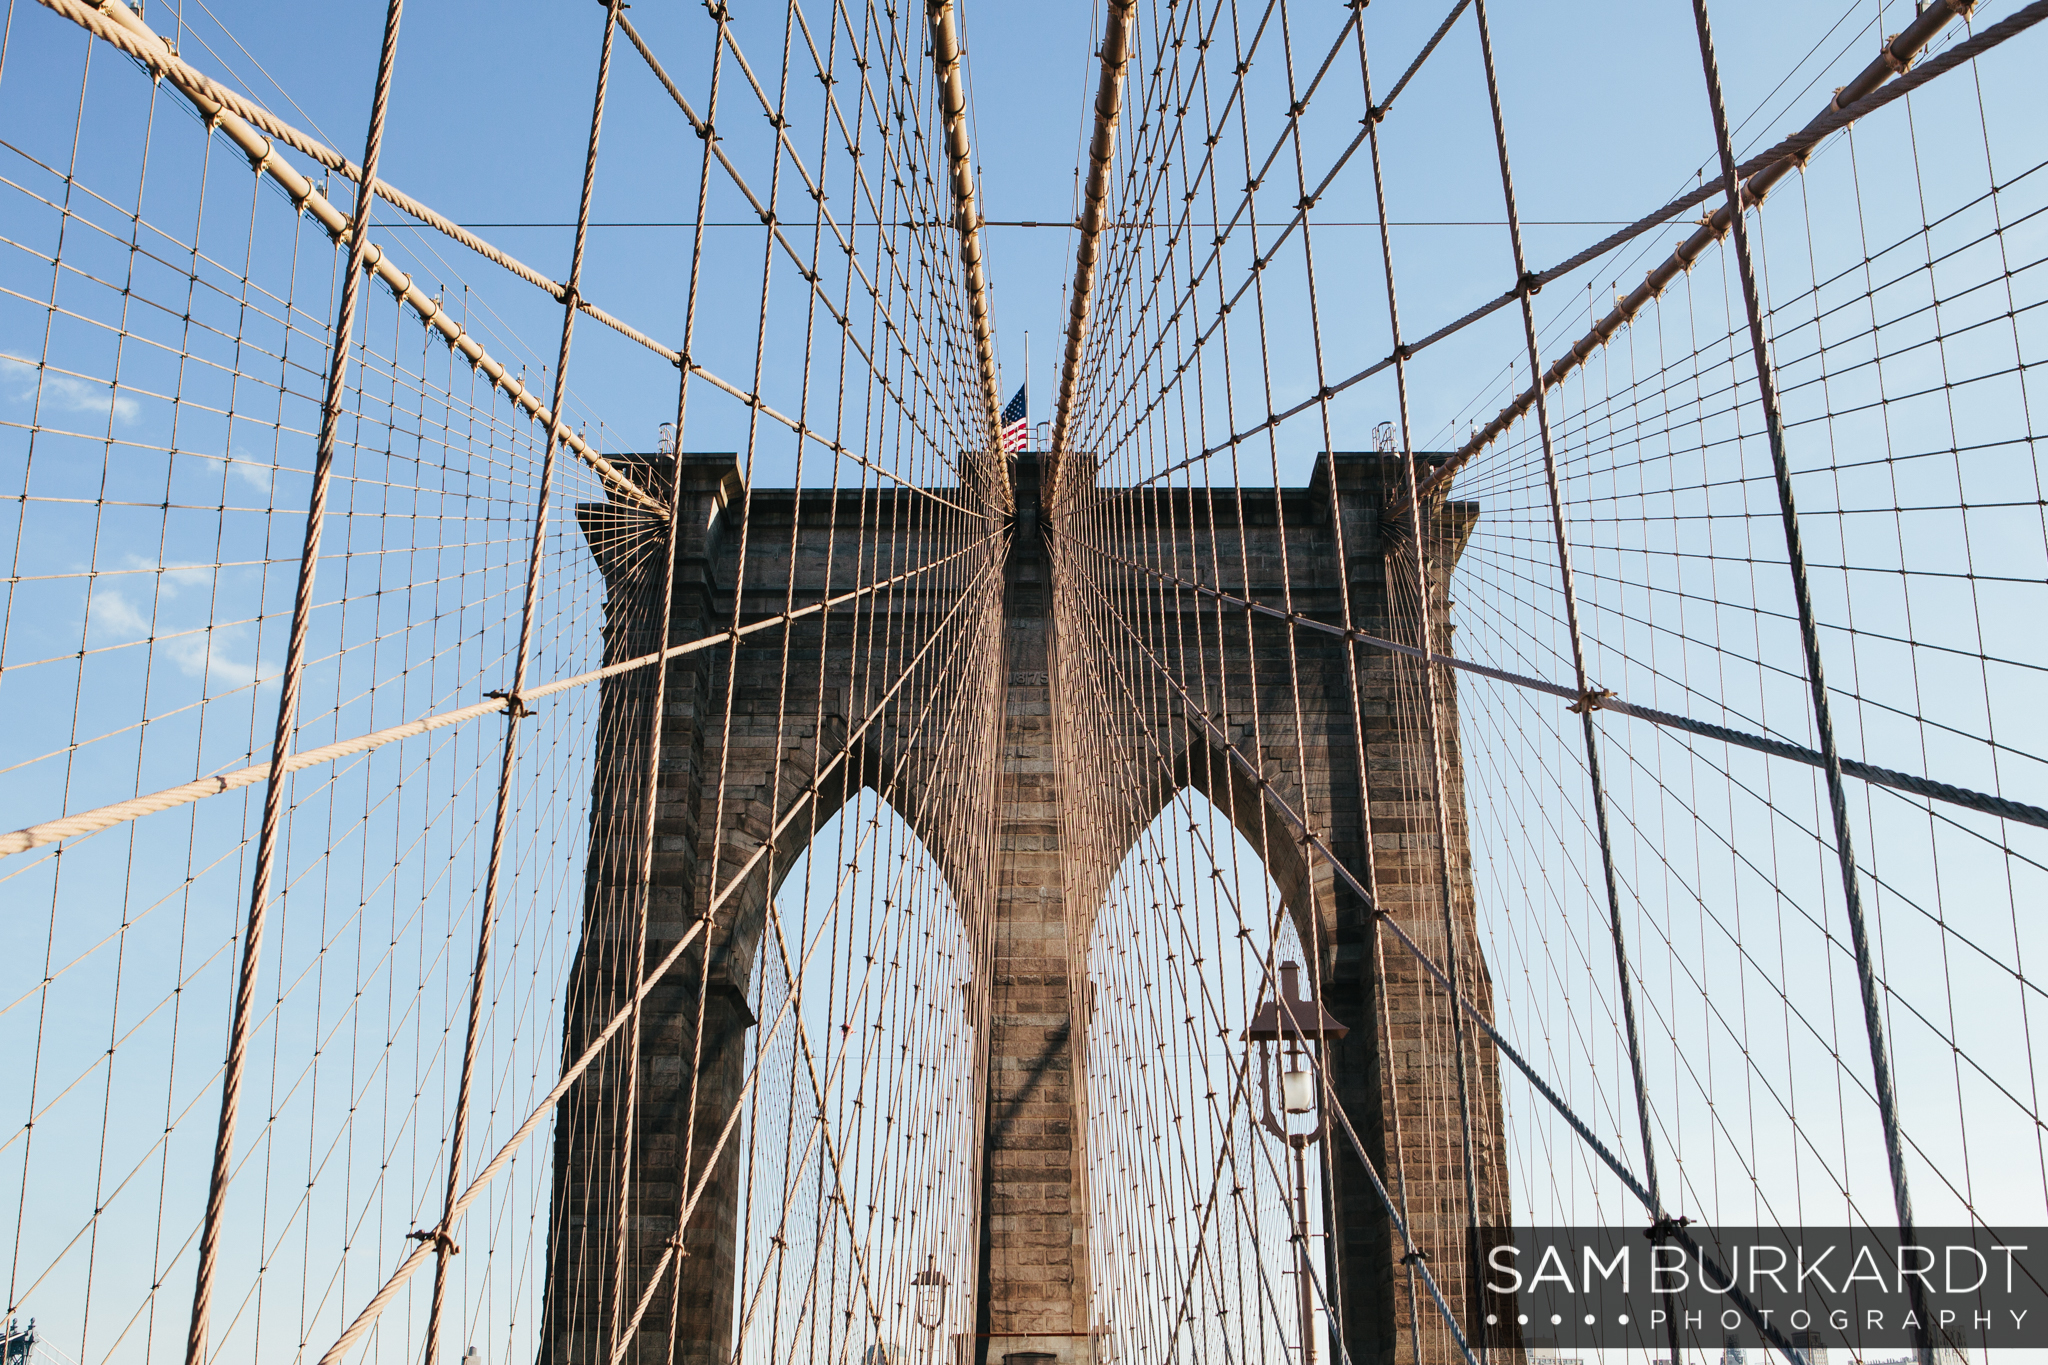 samburkardt_brooklyn_bridge_new_york_engagement_proposal_skyline_0025.jpg